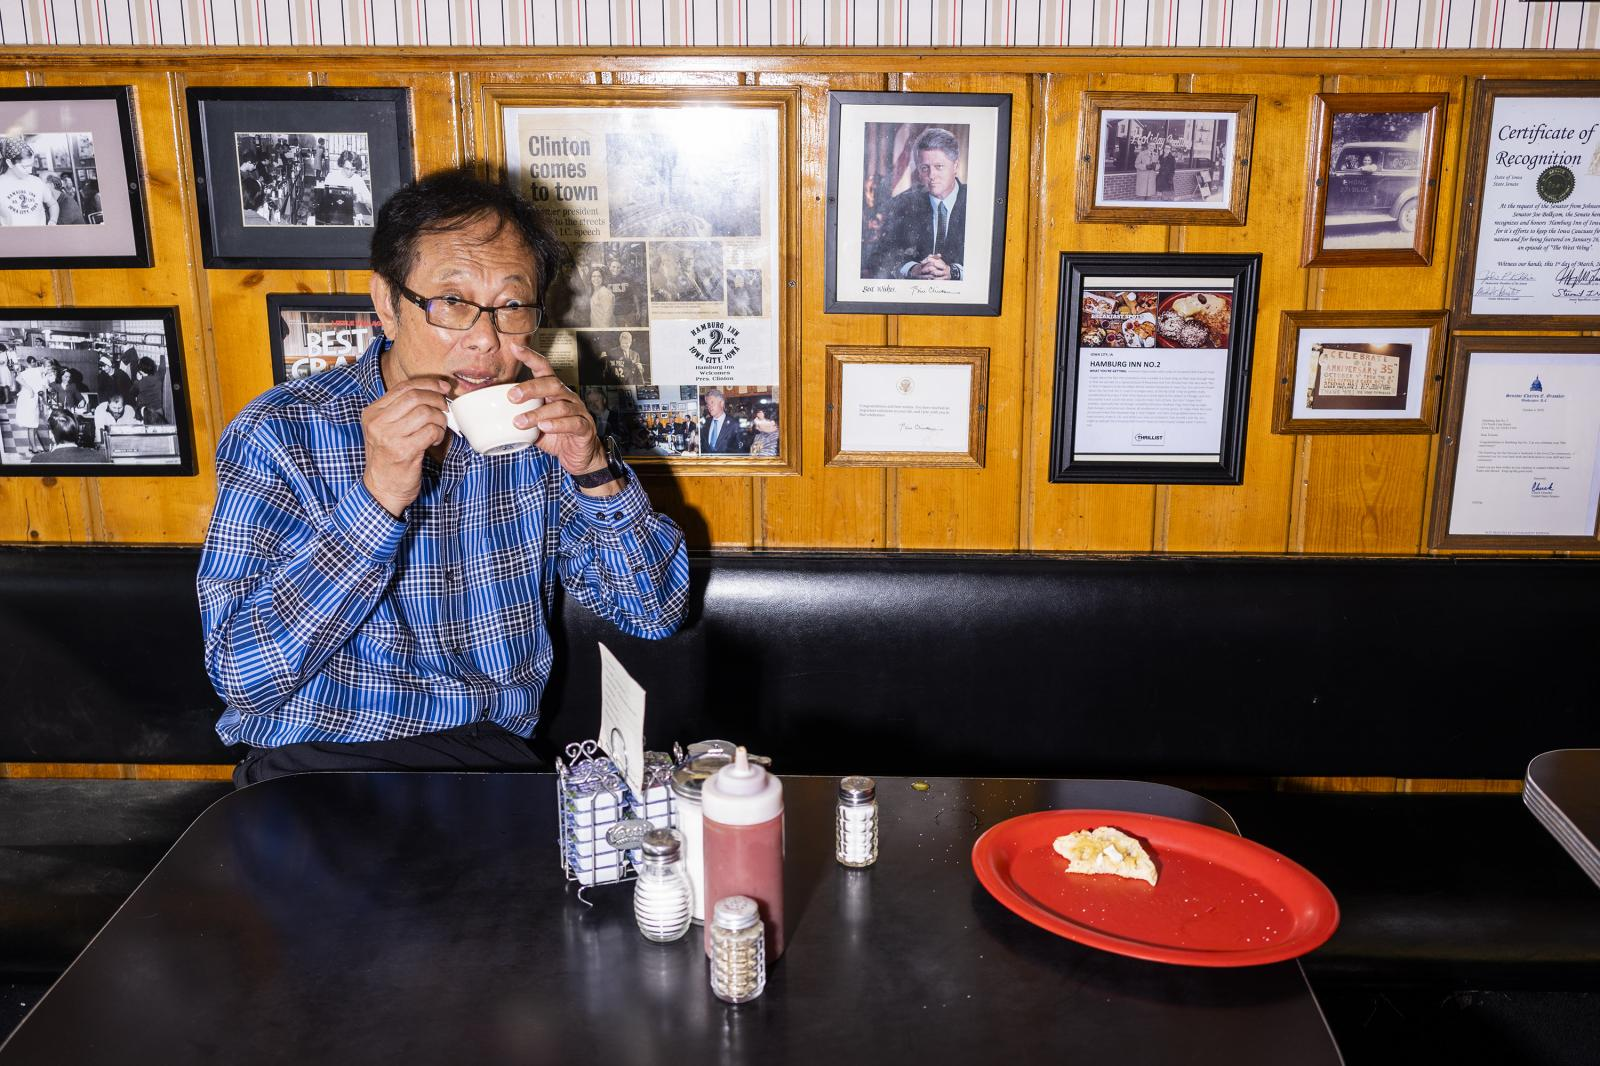 Hamburg Inn owner Michael Lee eats egg drop soup prepared by one of the cooks at Hamburg Inn in Iowa City, Iowa on Tuesday, August 20, 2019. KC McGinnis for Buzzfeed News